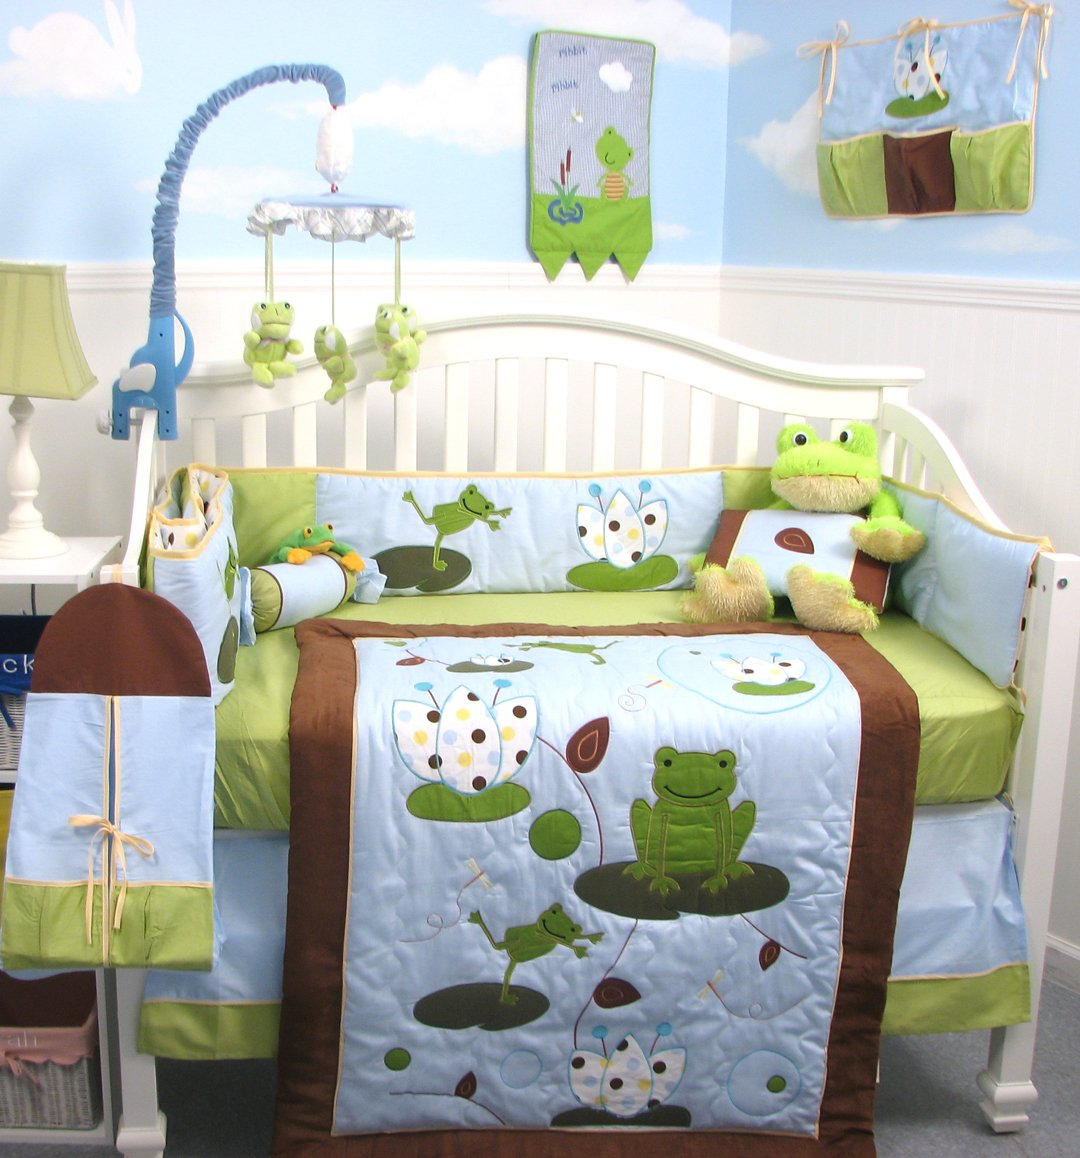 Amazon.com : SoHo Froggies Party Baby Crib Nursery Bedding Set 13 Pcs  Included Diaper Bag With Changing Pad U0026 Bottle Case : Frog Bumper Pad : Baby